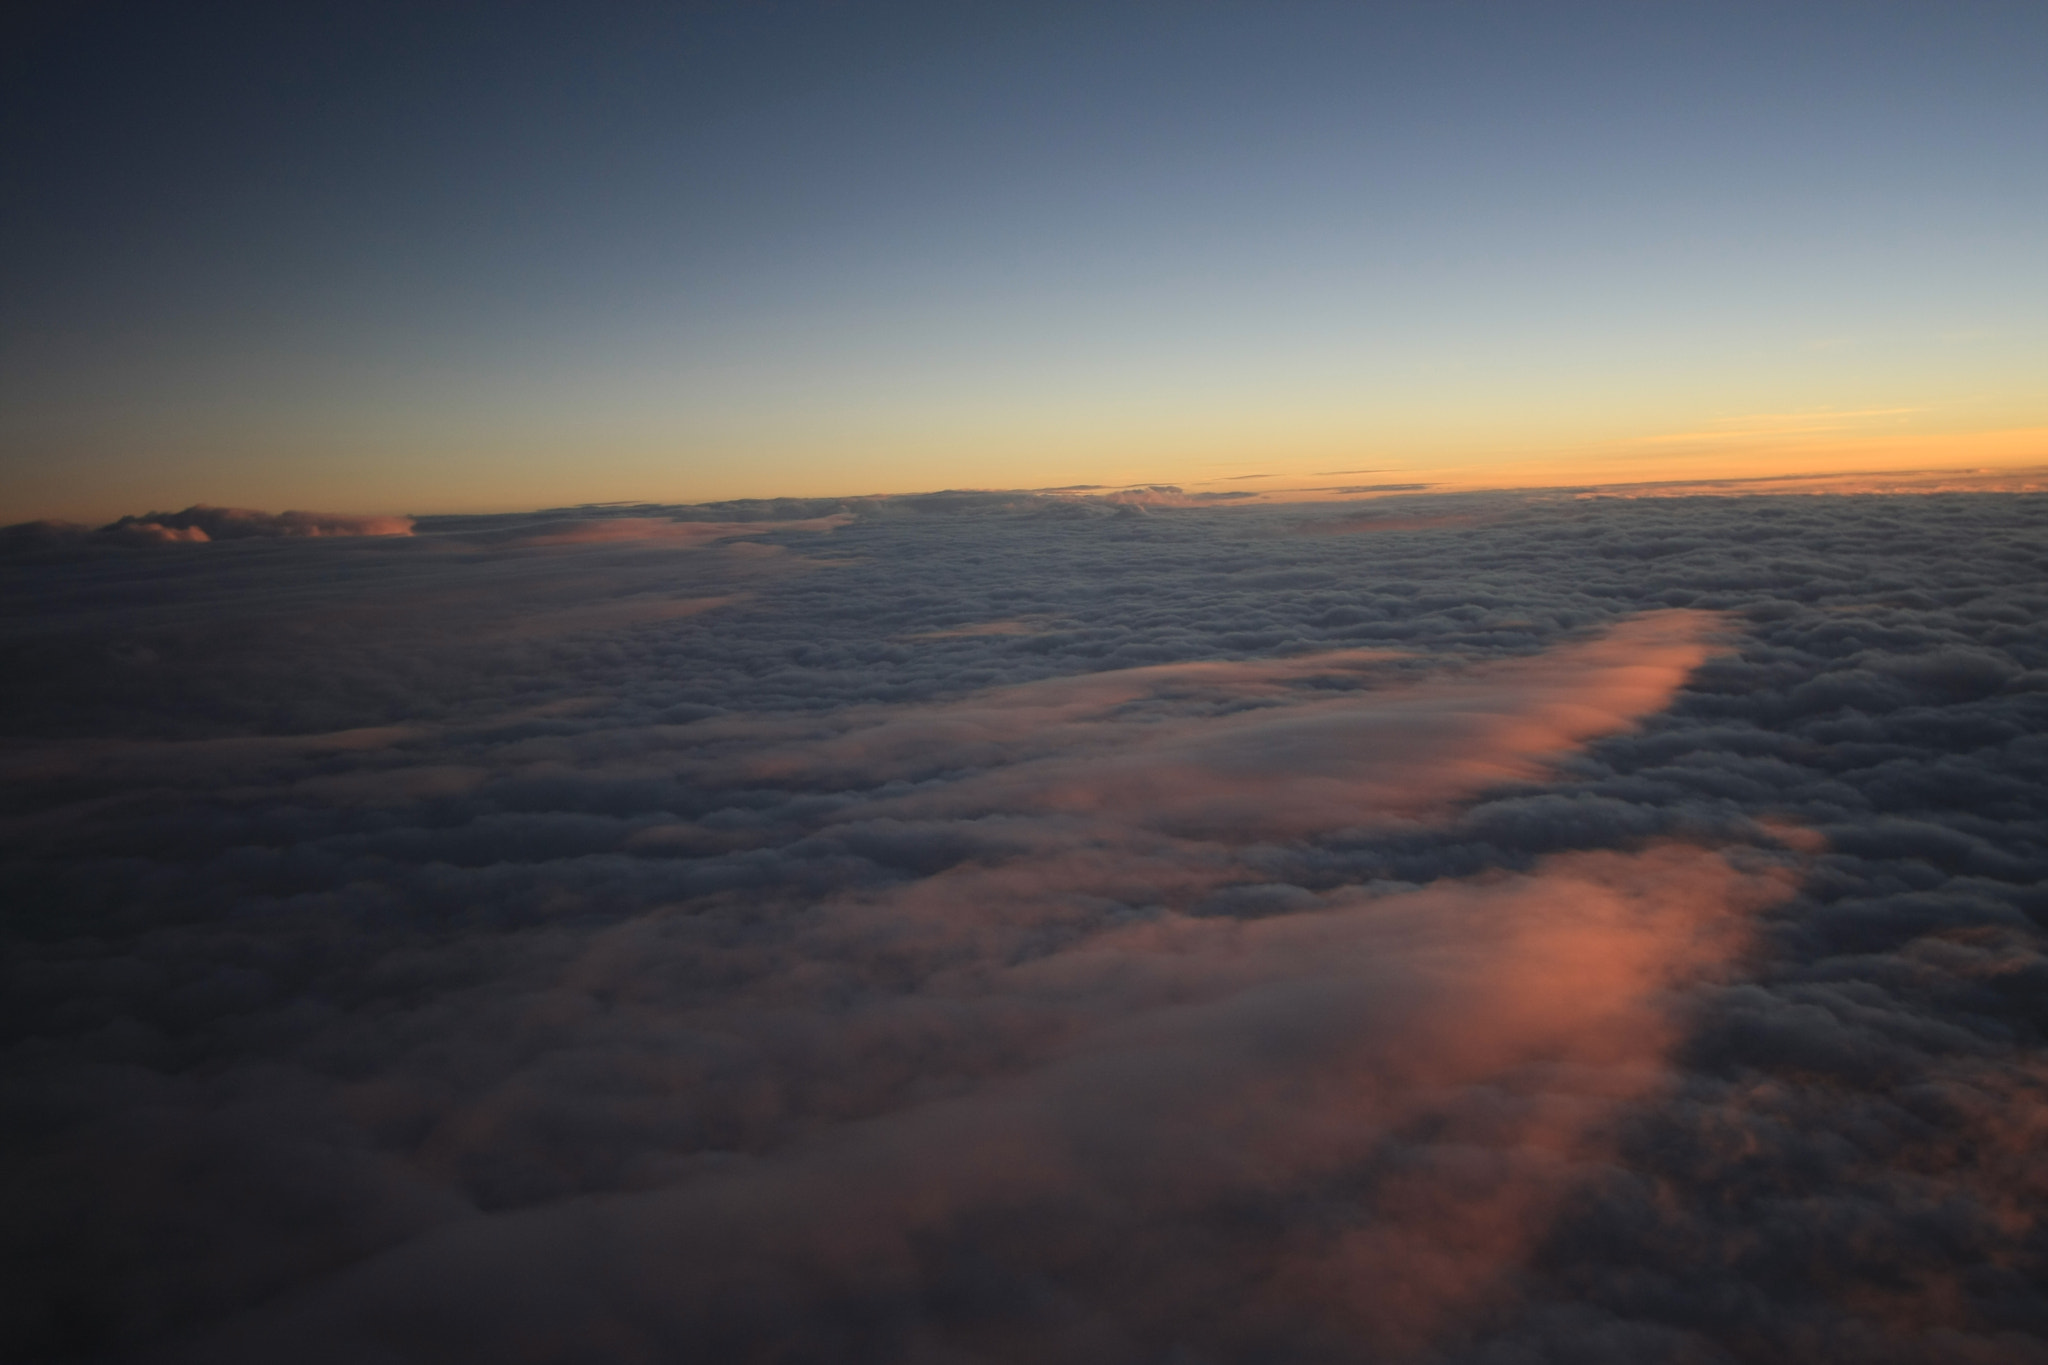 Photograph Over the cloud by Jate Charoennish on 500px